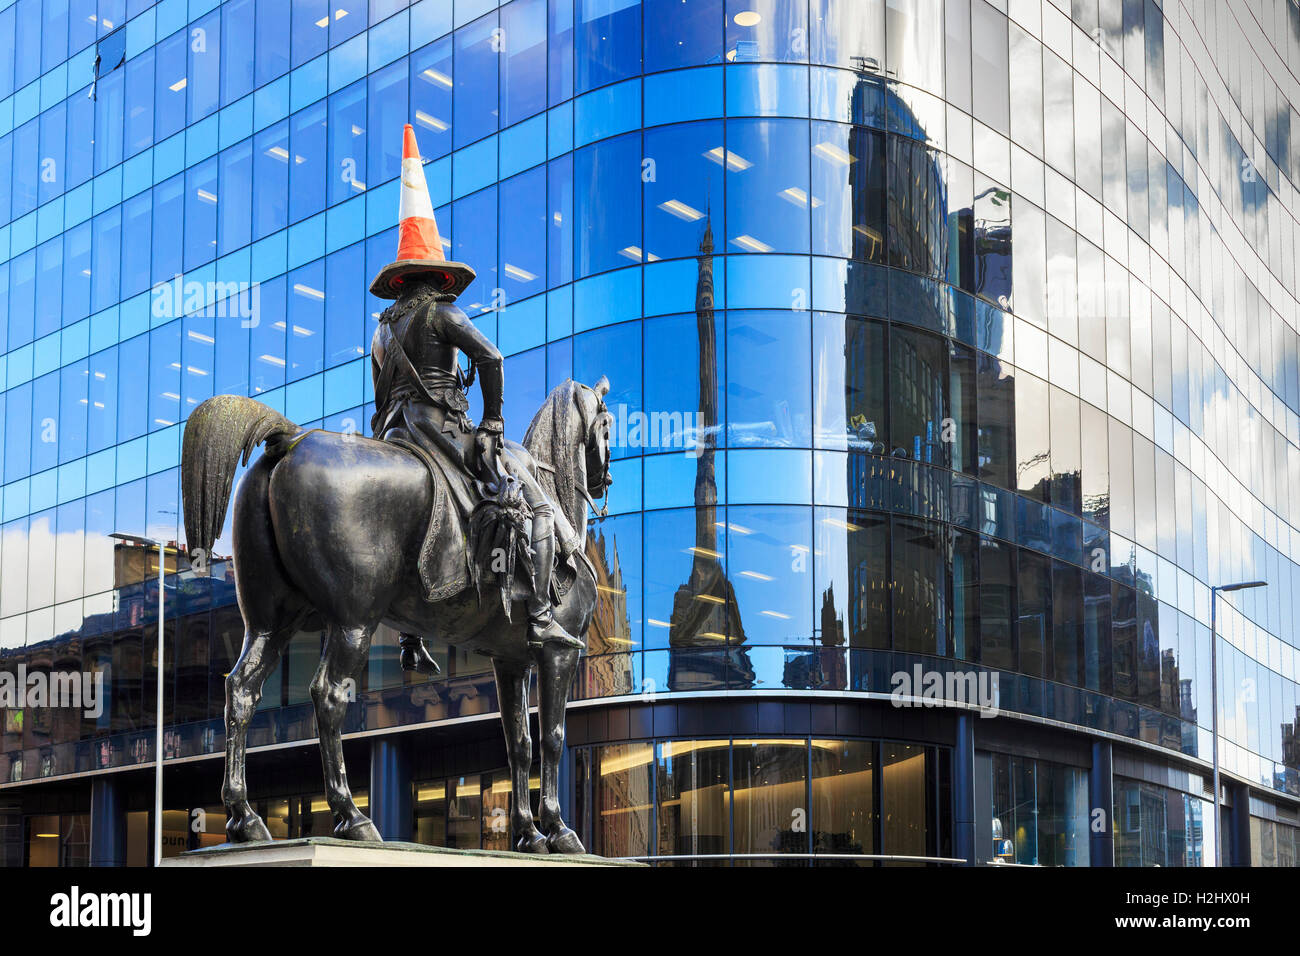 Duke of Wellington statue in Royal Exchange Square, Glasgow, Scotland with the iconic traffic cone on its head against - Stock Image